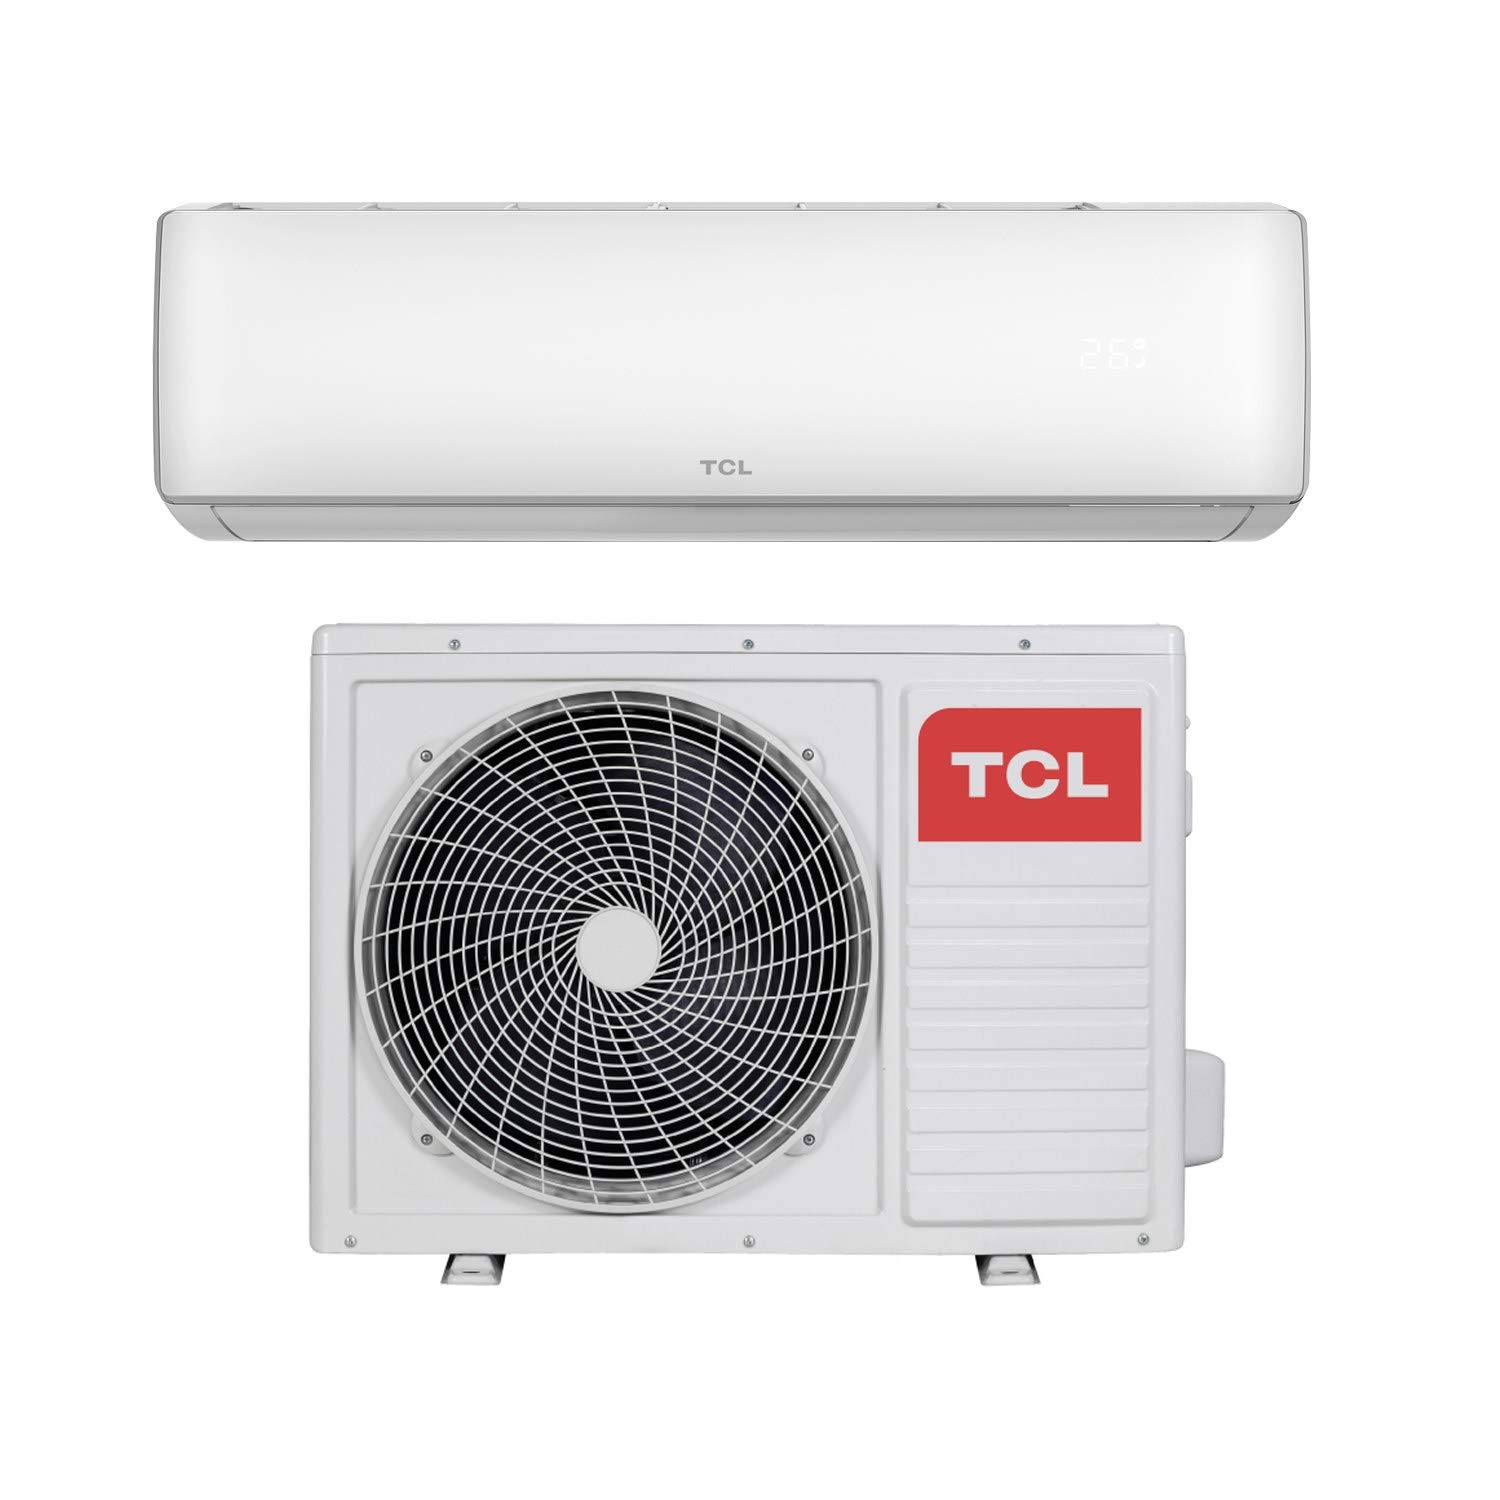 12000 BTU Smart WiFi A++ easy-fit DC Inverter Wall Split Air Conditioner  with 5 meters pipe kit - Wall Mounted Air Conditioning Unit with 5 years